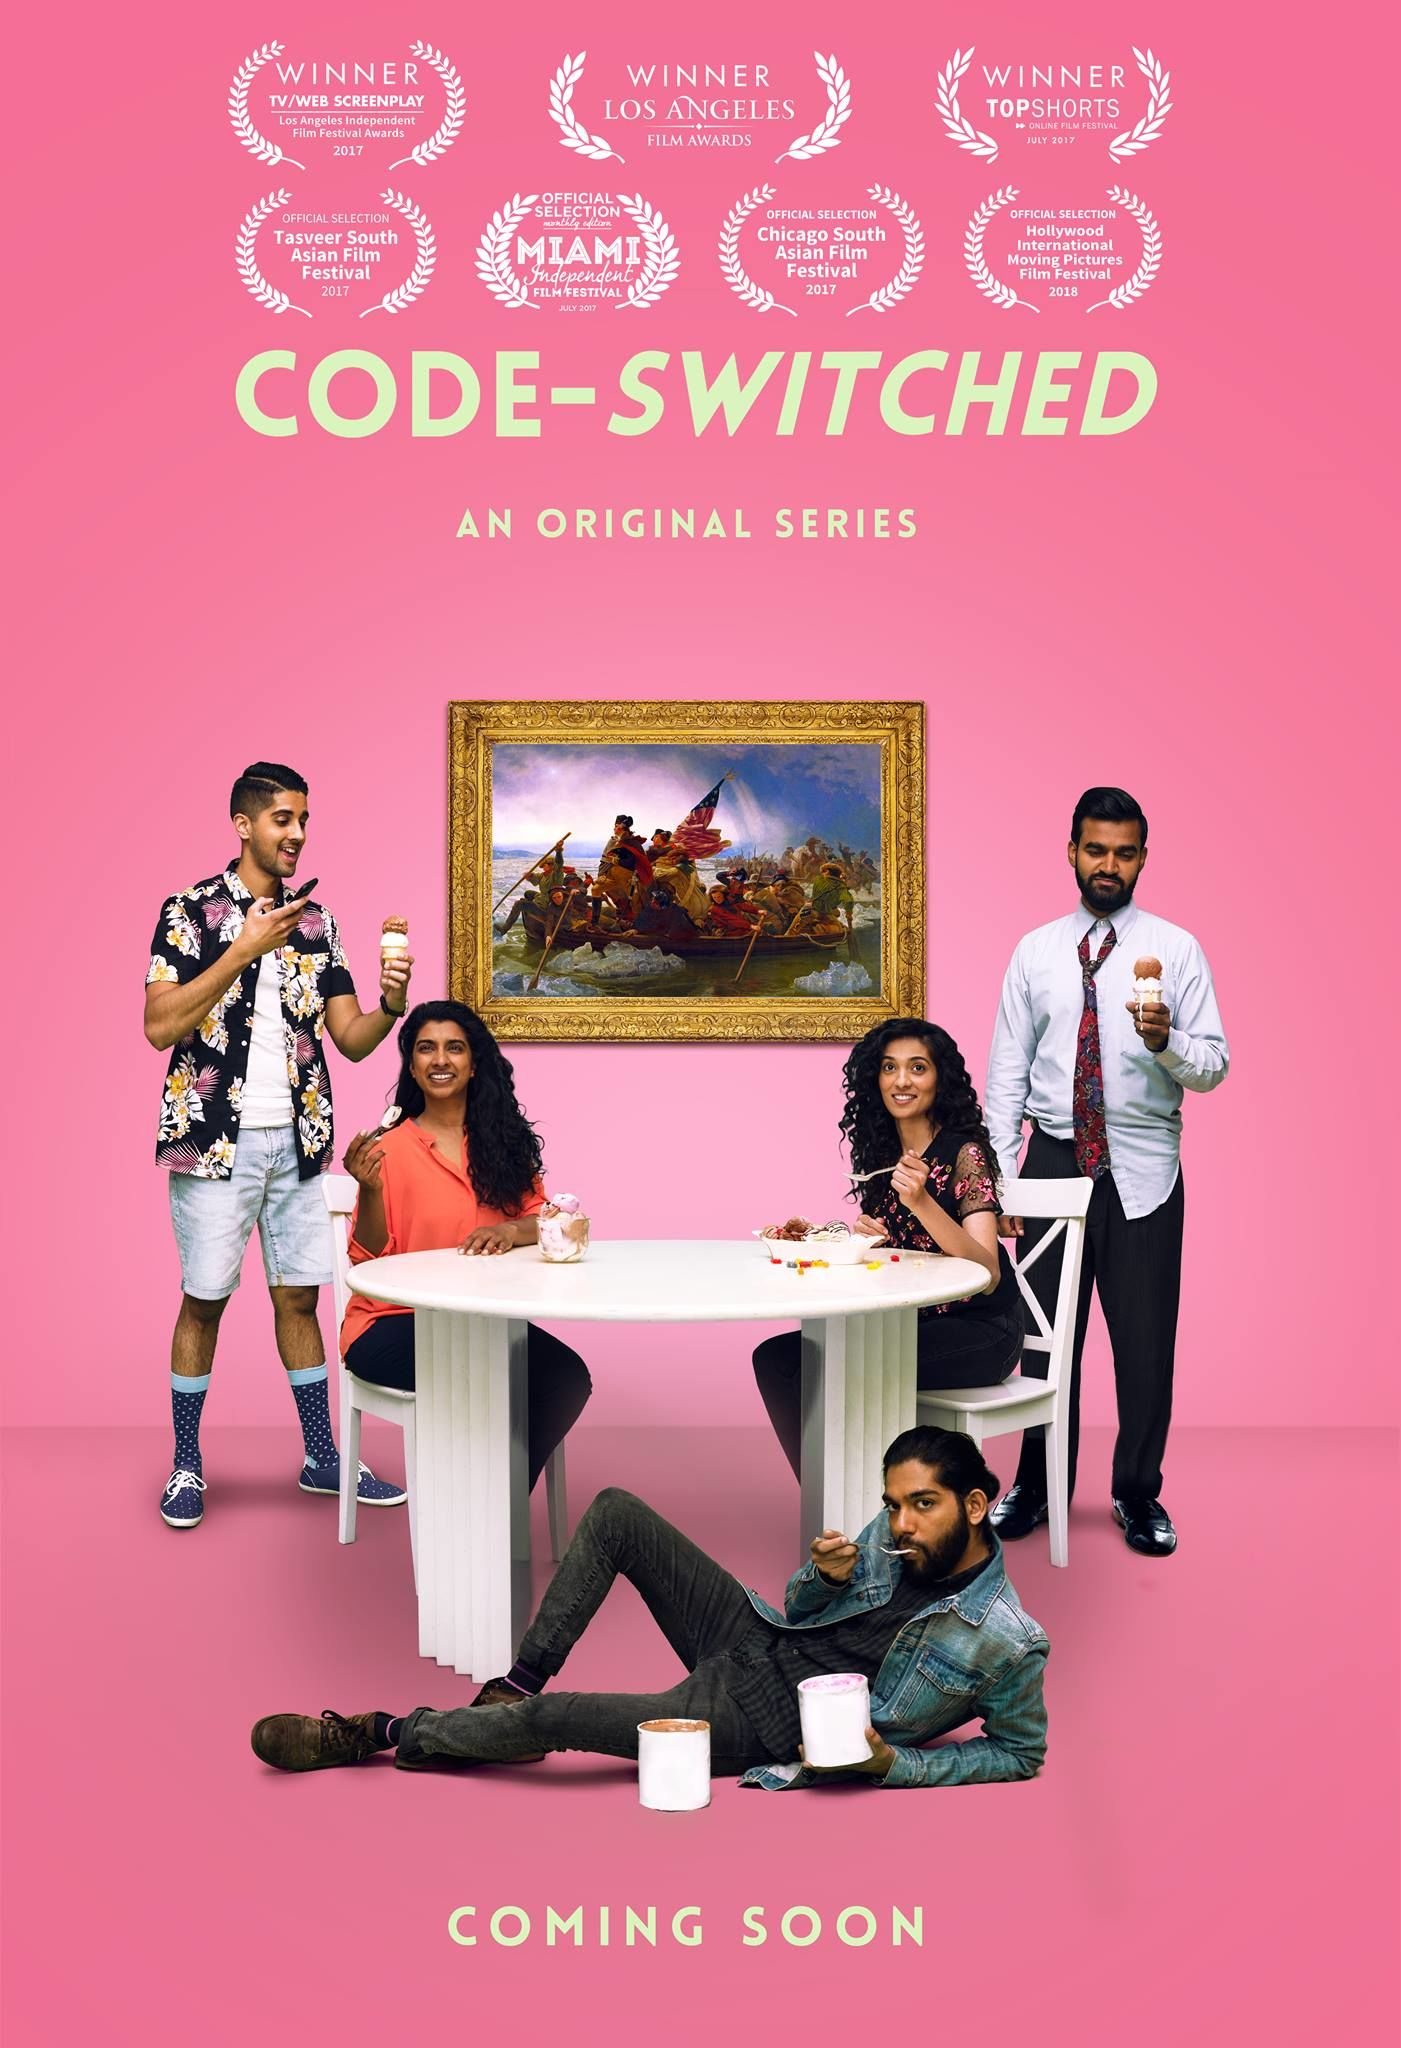 Code-Switched